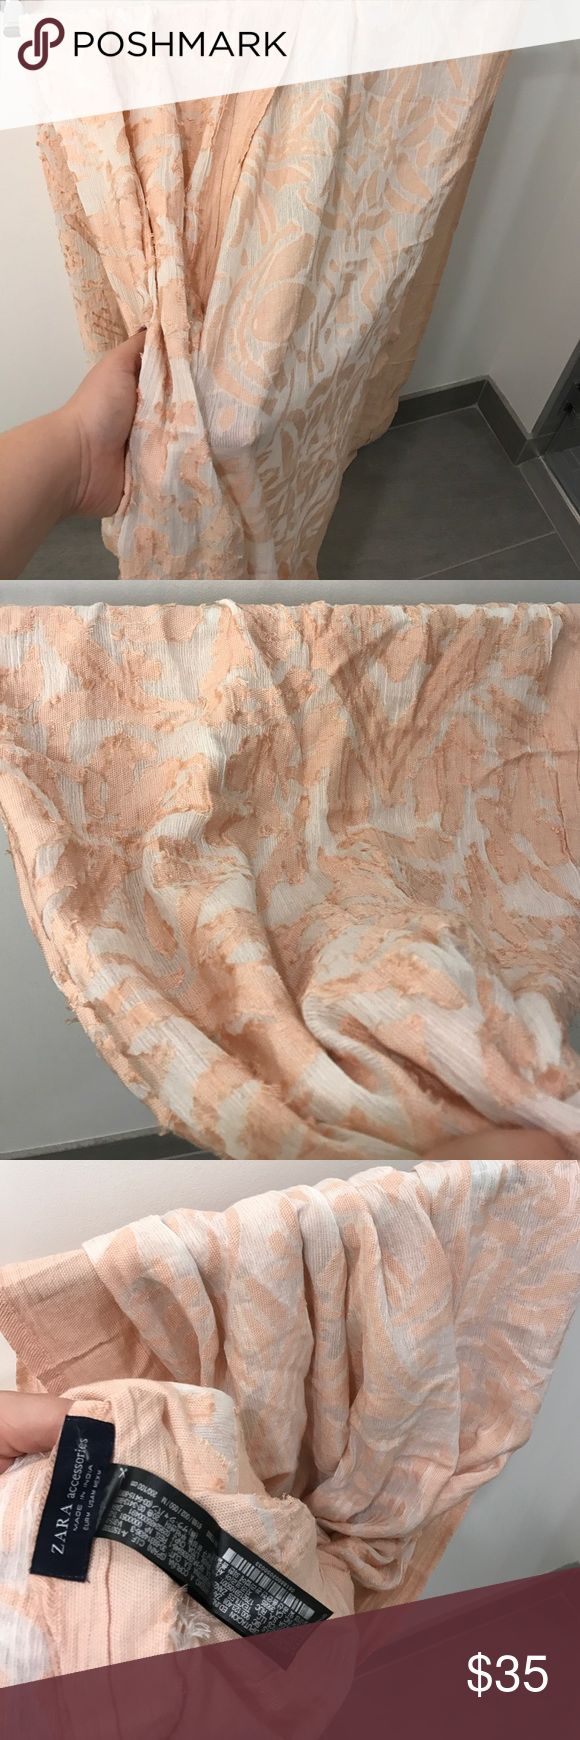 Zara new elegant peach cream scarf spring summer Zara brand new soft peach beige scarf perfect for spring! Really pretty and  is double sided so can be worn different ways. Really pretty and feminine 💕💕💕💕💕  🙅🏻 PLEASE DO NOT ASK LOWEST PRICE 🙅🏻 ------------ Instead ---------------- ✅ USE OFFER BUTTON ✅ --------😐 no low balling please😐-------- 💁🏻 NO DRAMA HERE LETS BE NICE 🤗 🚫🚭 SMOKE FREE - PET FREE HOME 🚫🐾 👉 NO TRADES 👈 Zara Accessories Scarves & Wraps